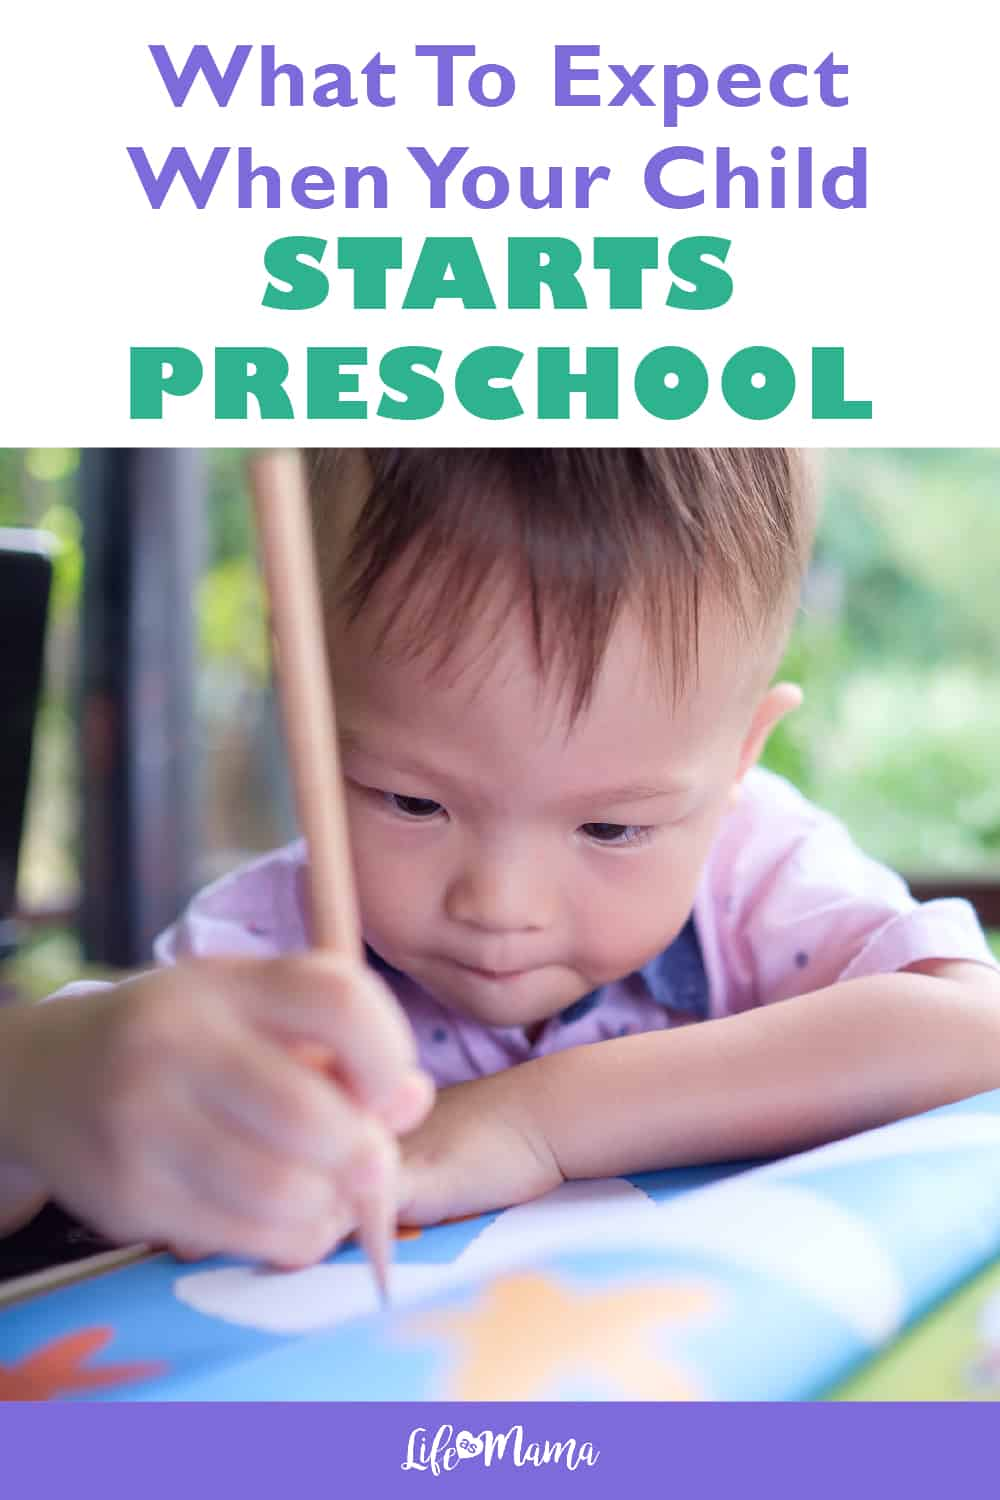 What To Expect When Your Child Starts Preschool-01-01